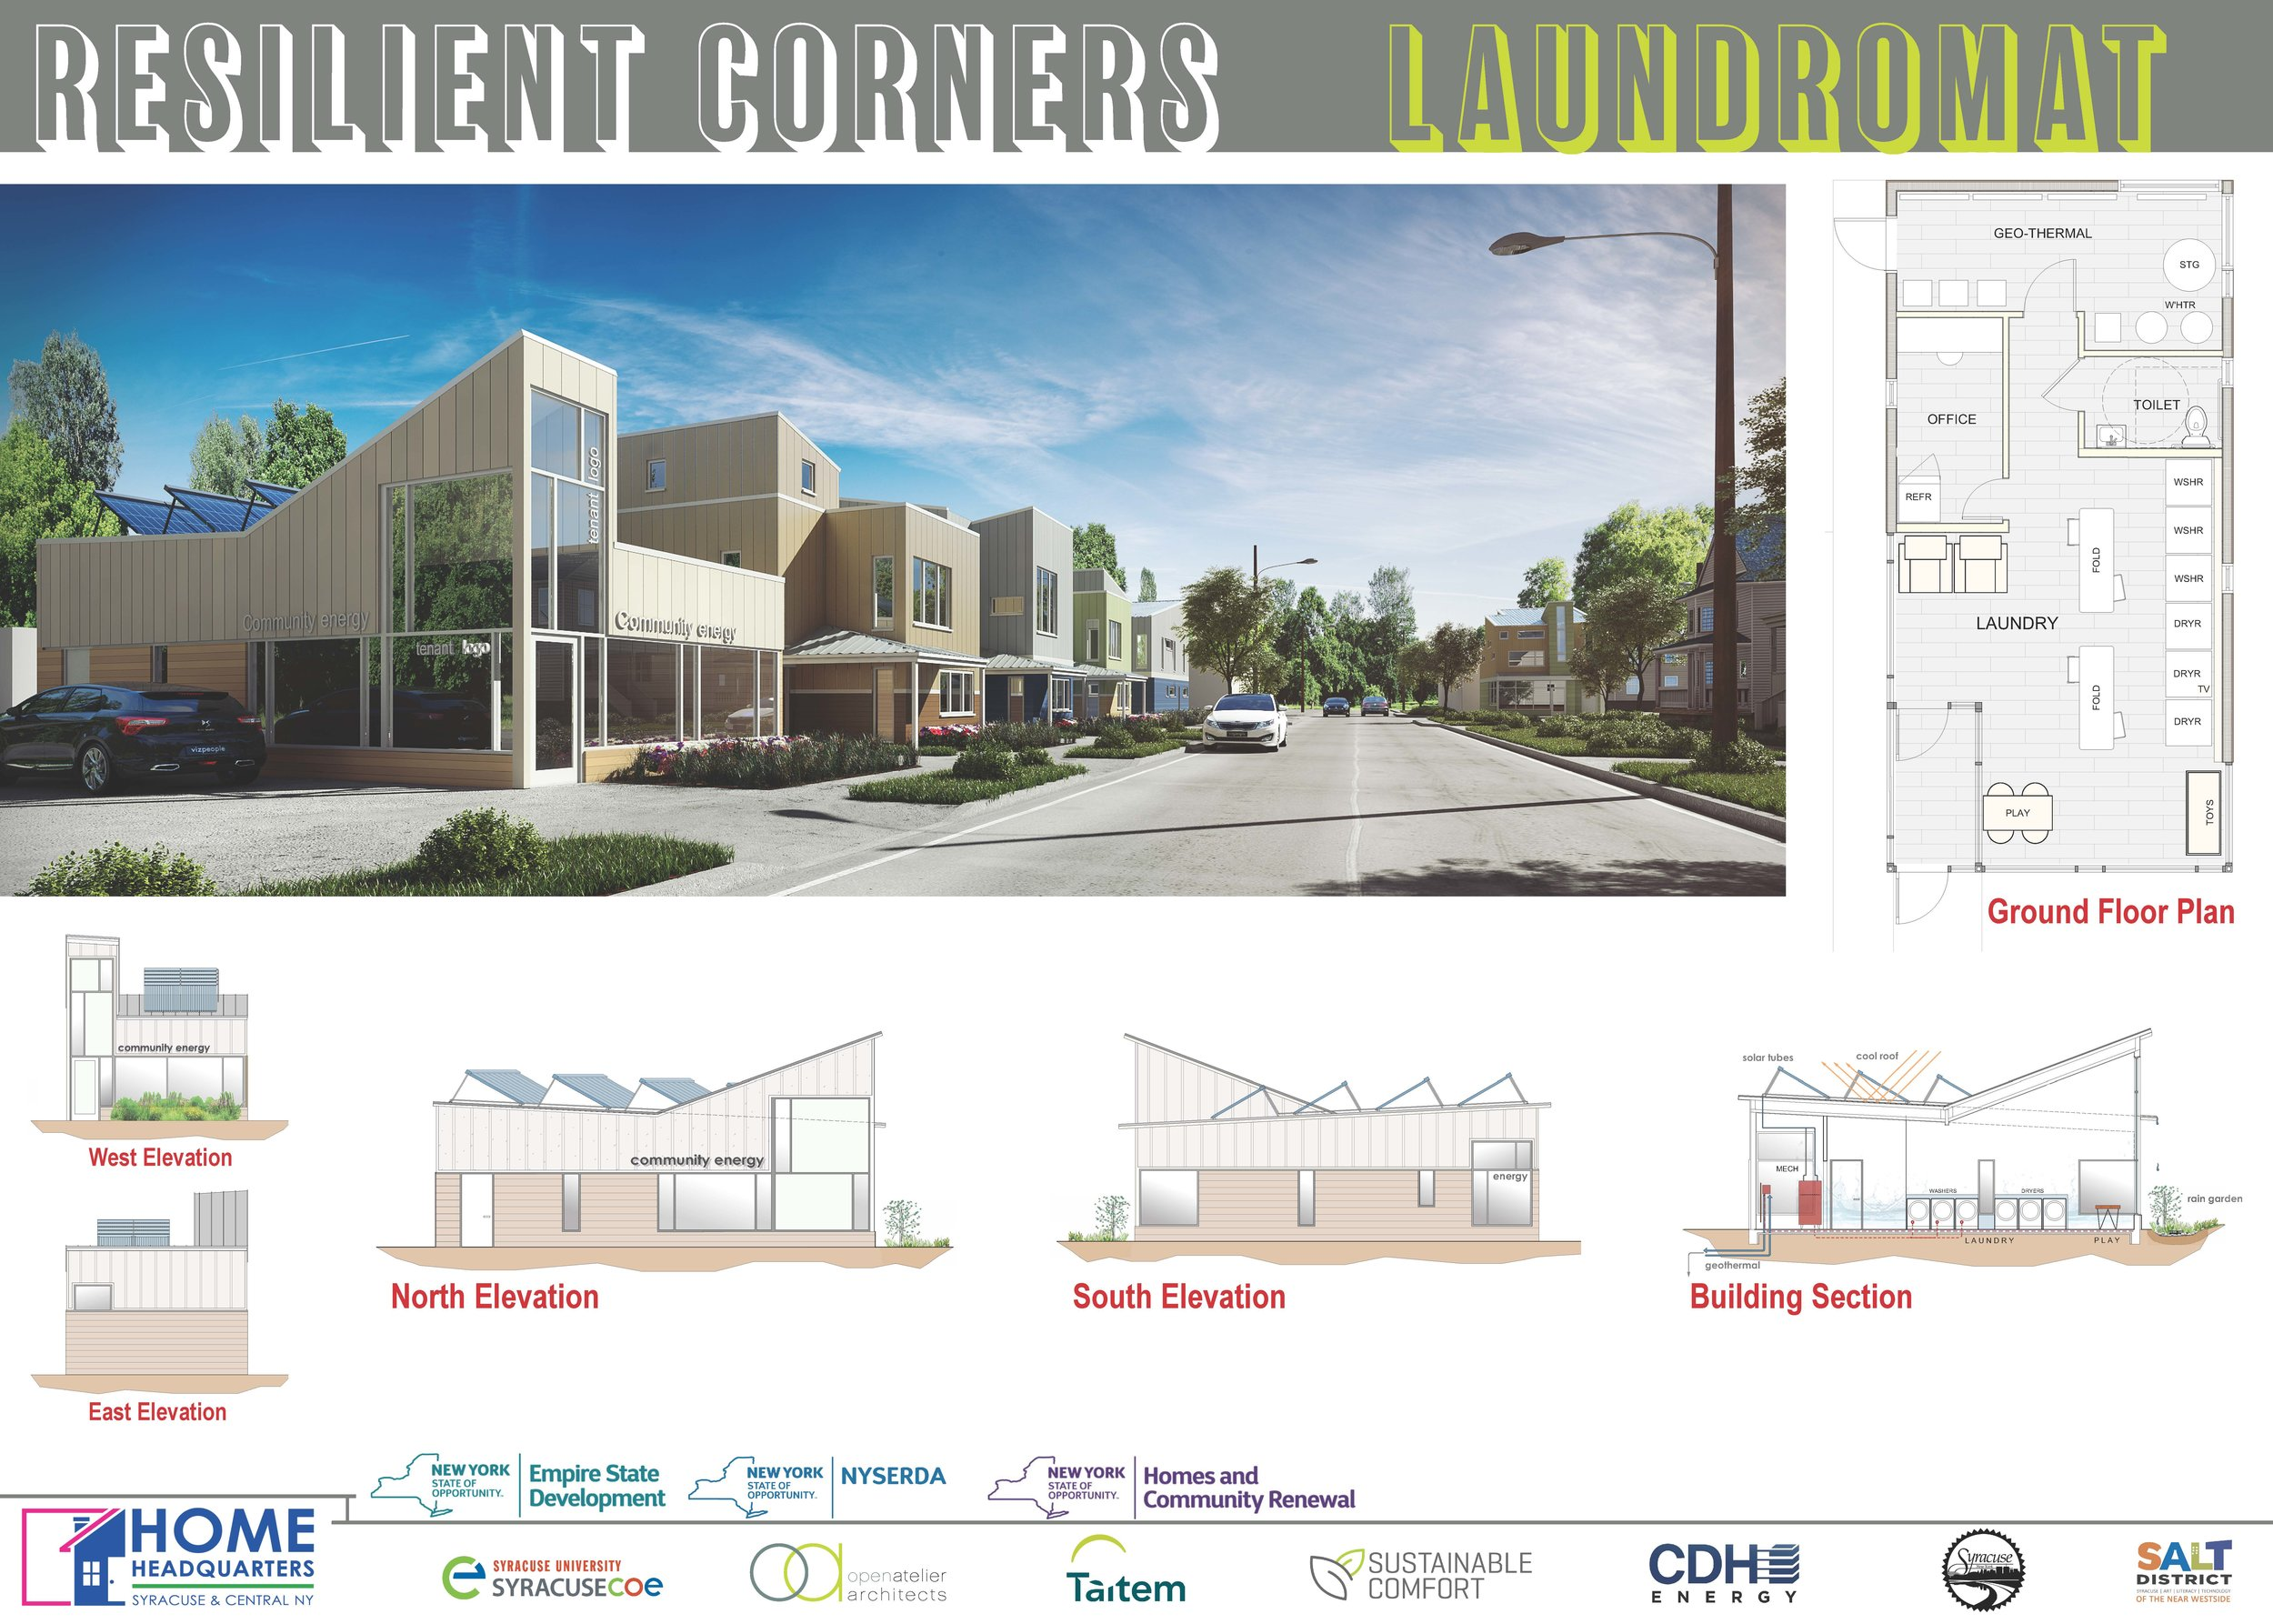 Resilient Corners Board Laundry with Render.jpg